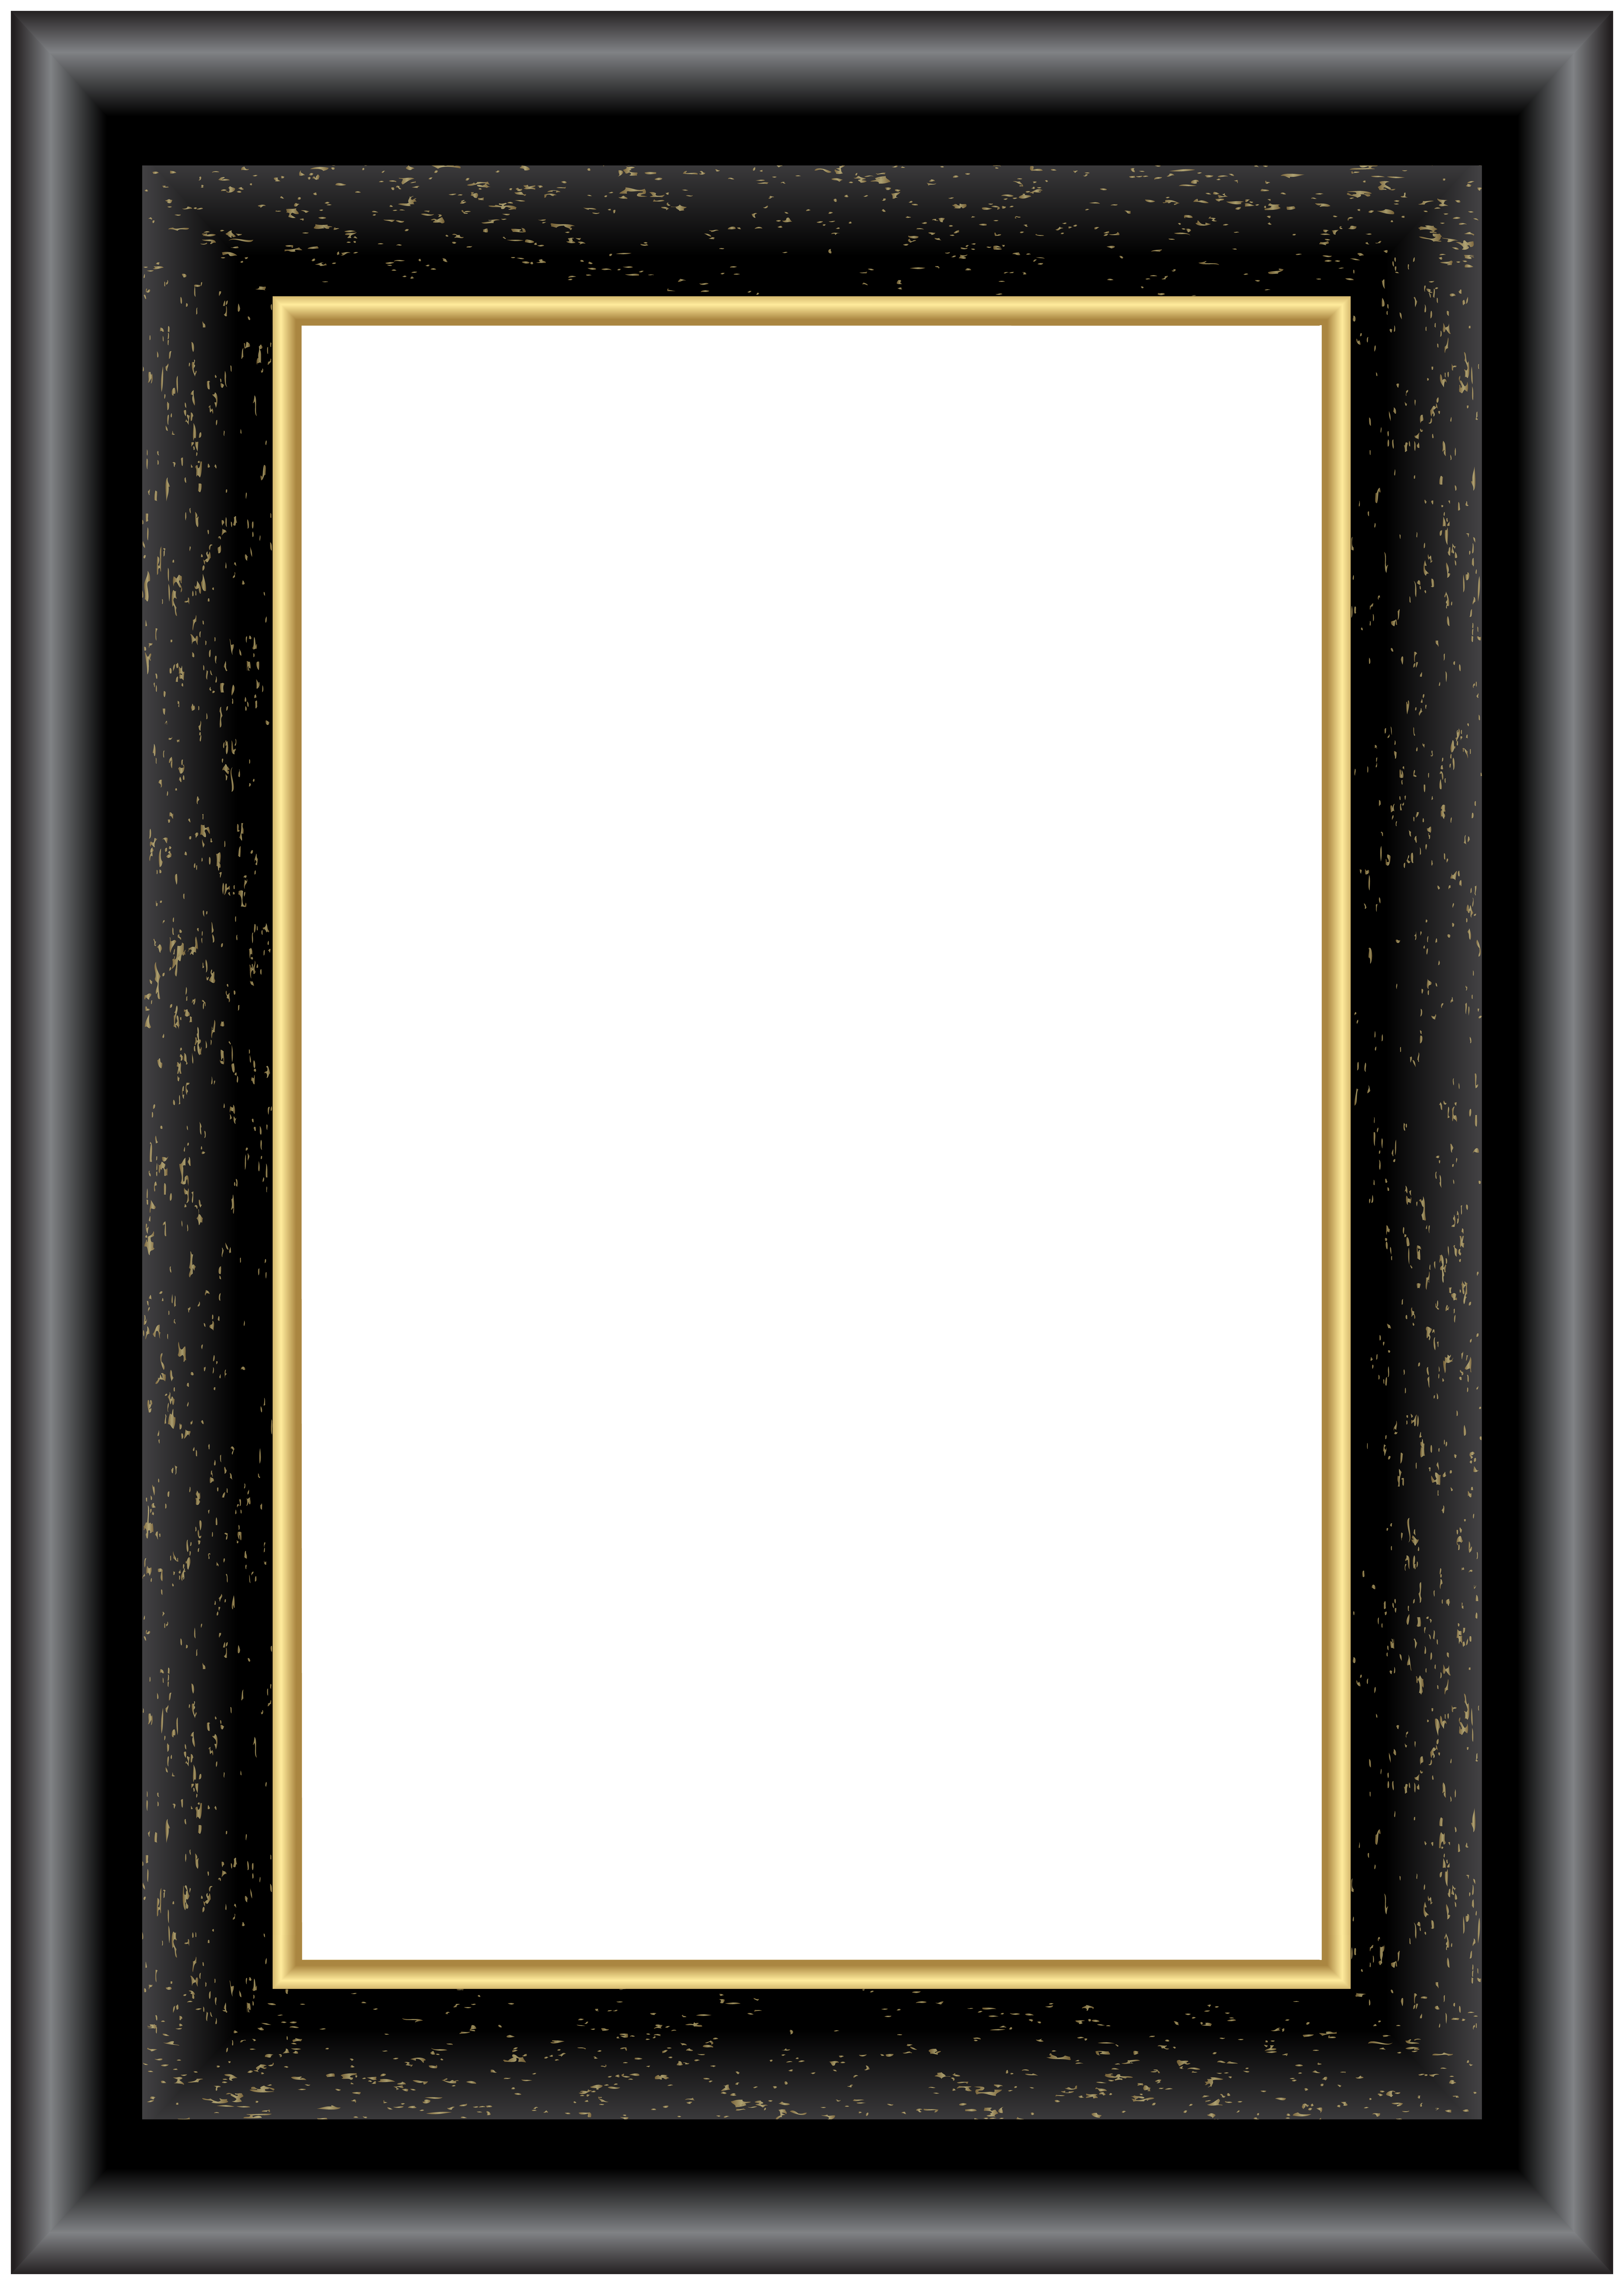 Black Decorative Frame Png Clip Art Gallery Yopriceville High Quality Images And Transparent Png Free Clipart Frame Frame Decor Clip Art